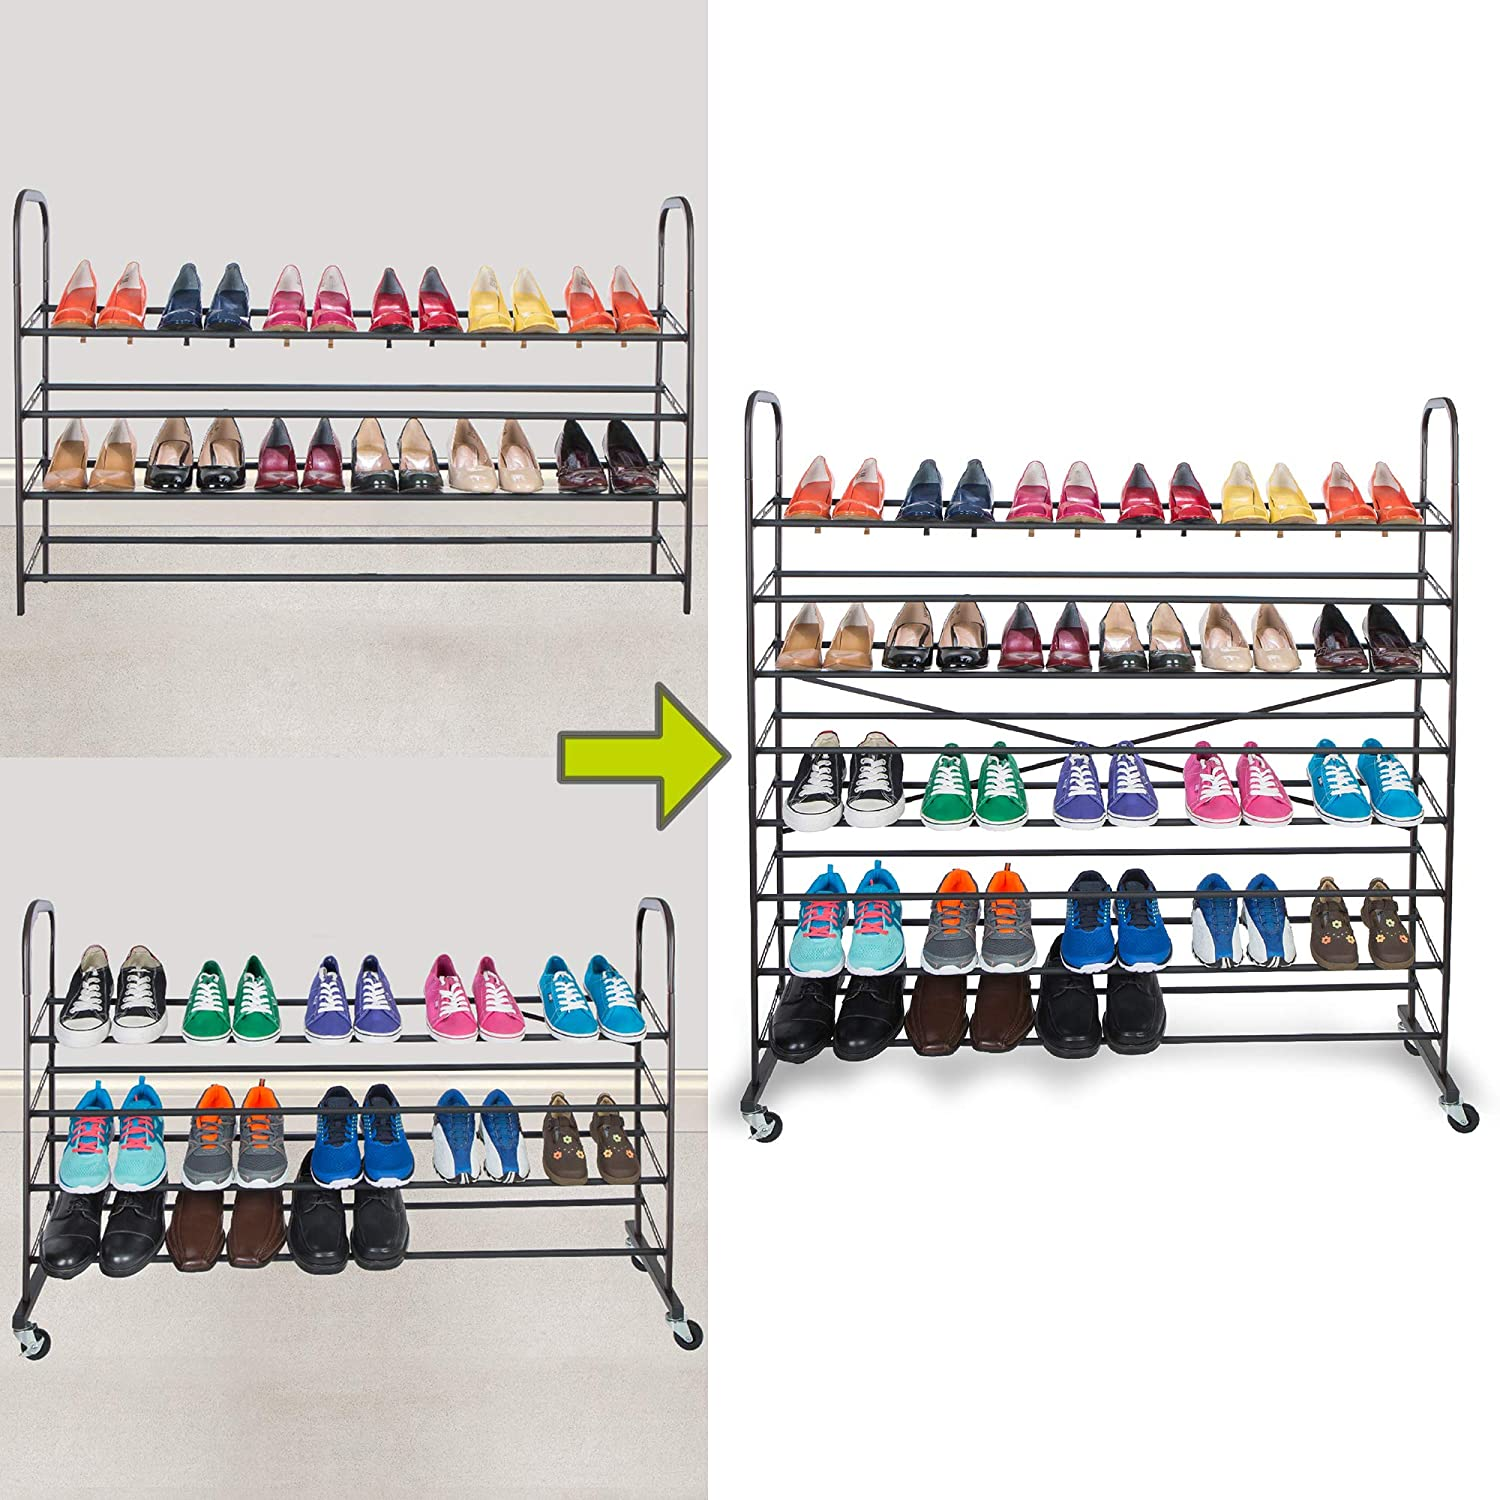 Smart Design 8-Tier Steel Metal Shoe Rack Tower w/Rolling Wheels - Holds 48 Pairs of Shoes - Easy Assembly & Adjustable - Entryway, Closet, Garage - Home Organization (44 x 50.75 Inch) [Bronze]